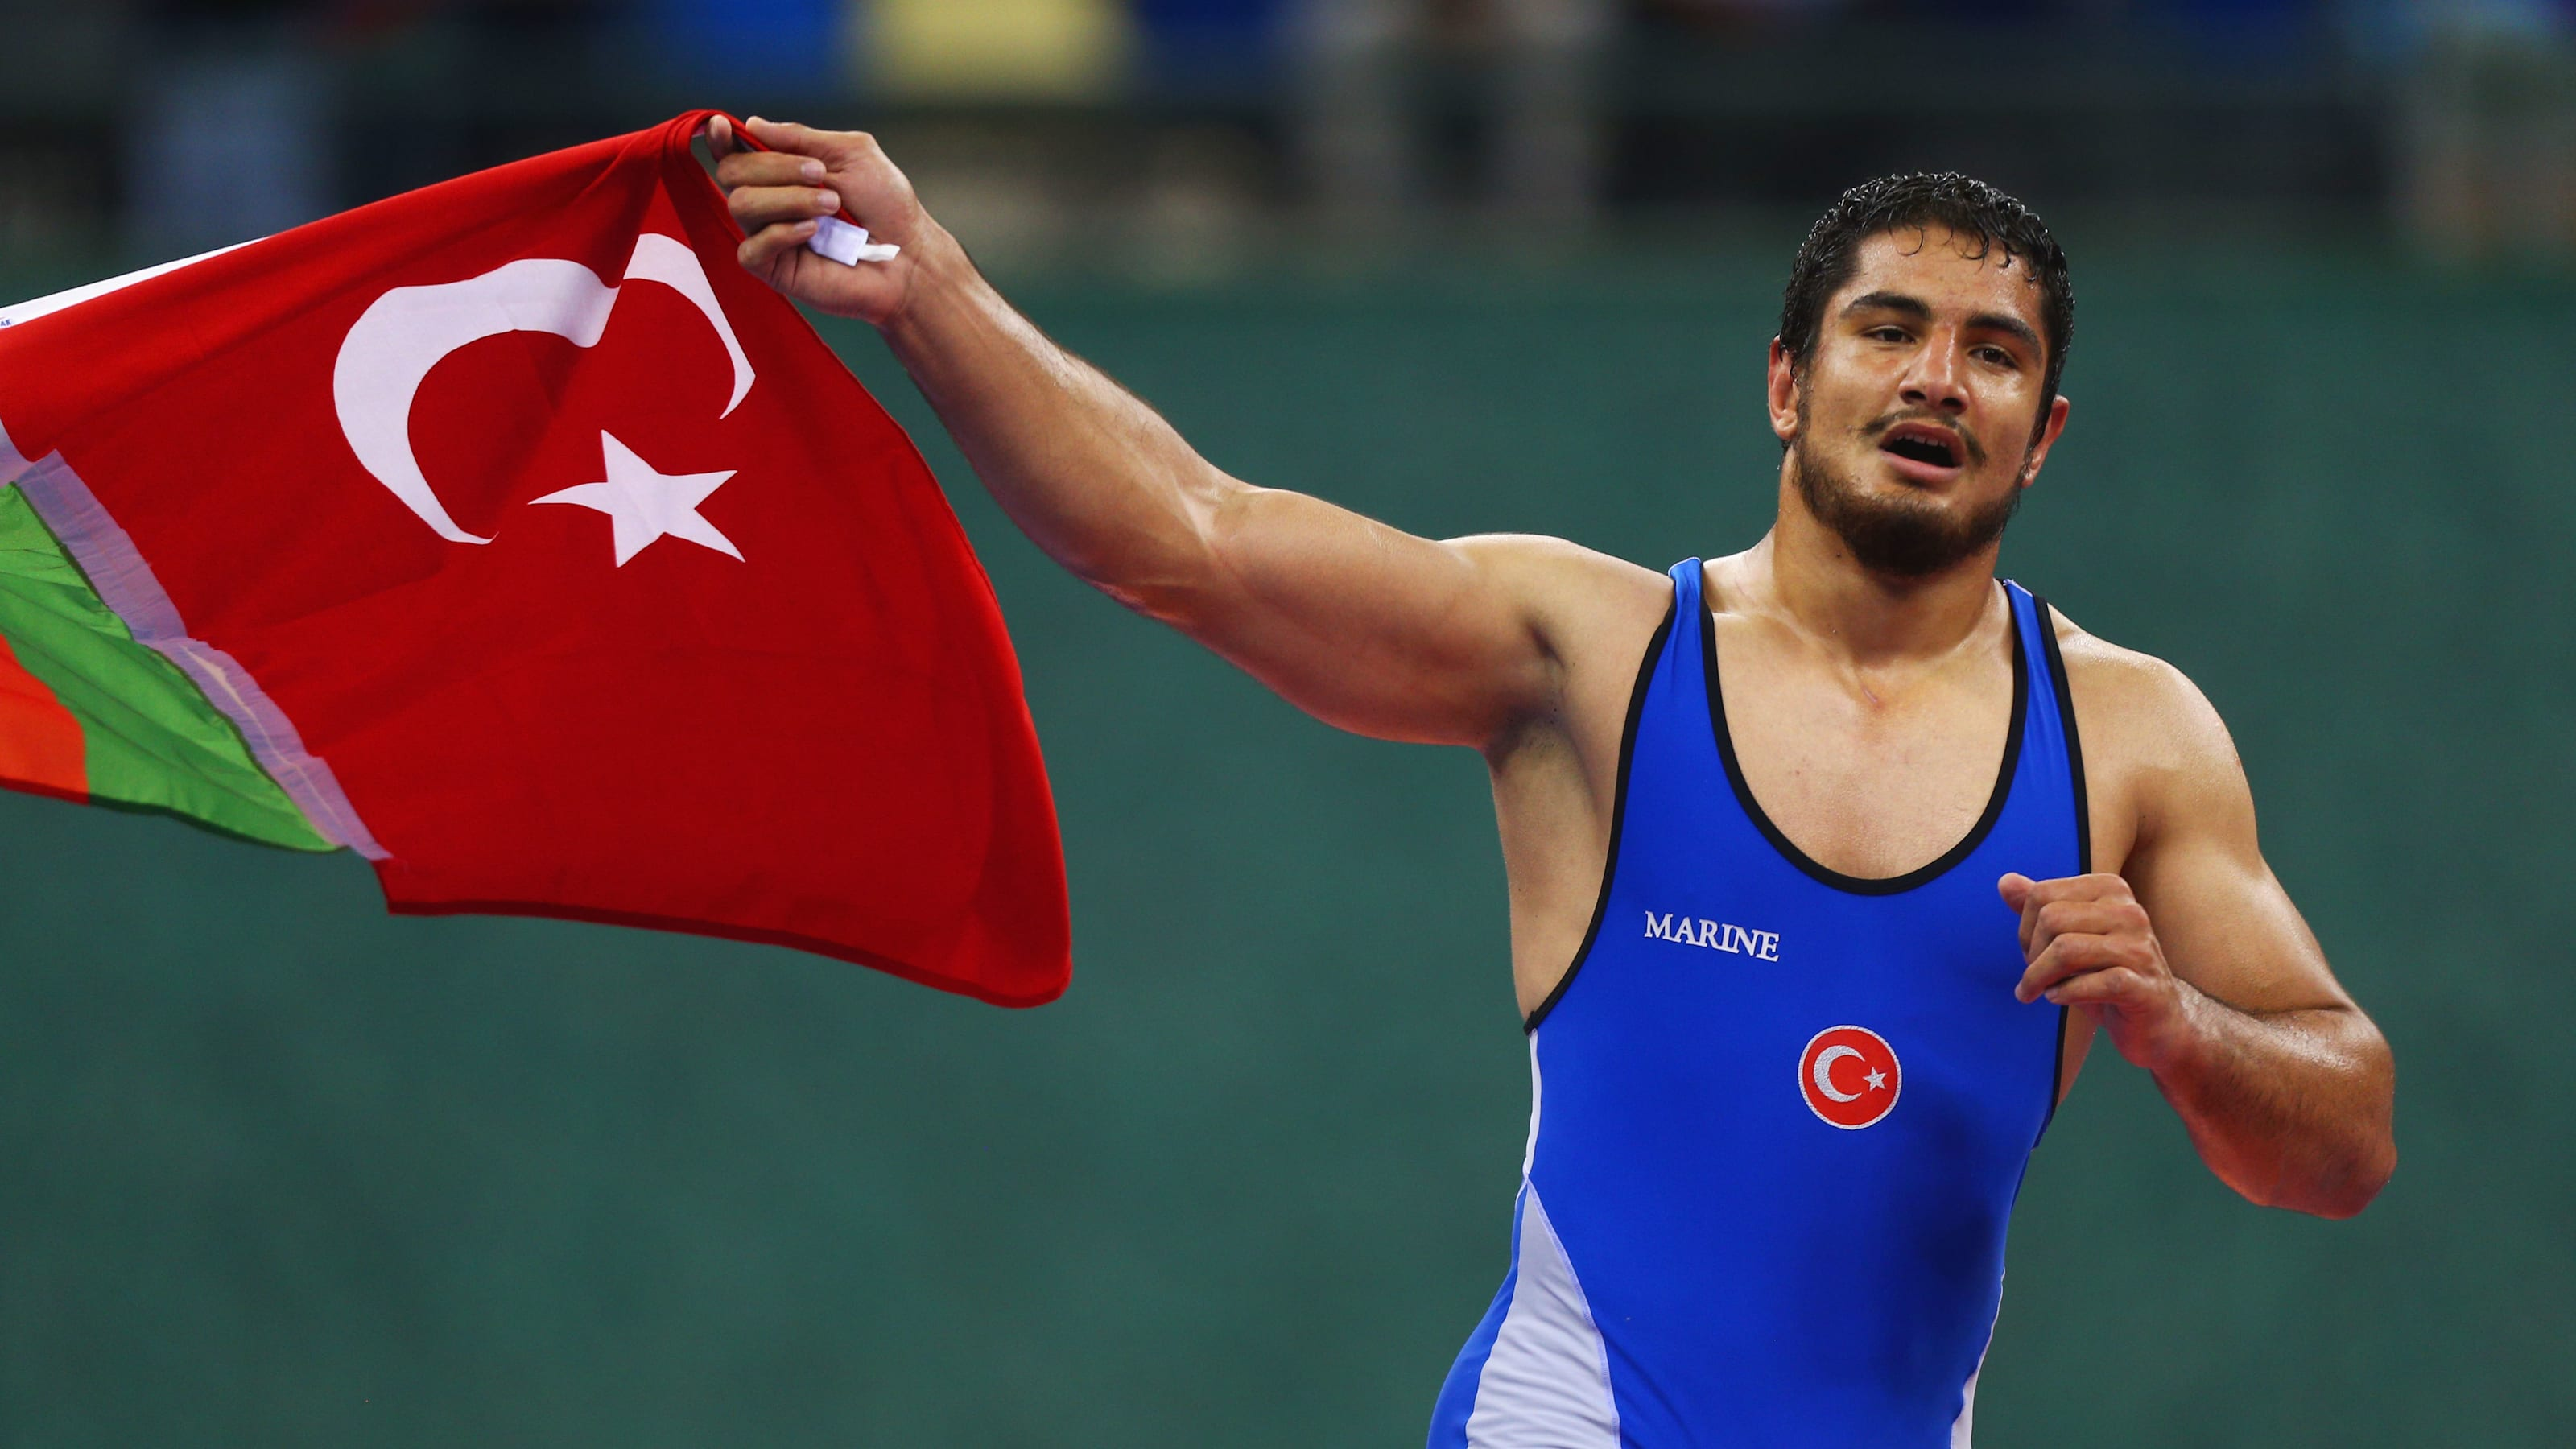 Q&A: Wrestler Taha Akgul aiming to become 'legend' at Tokyo 2020